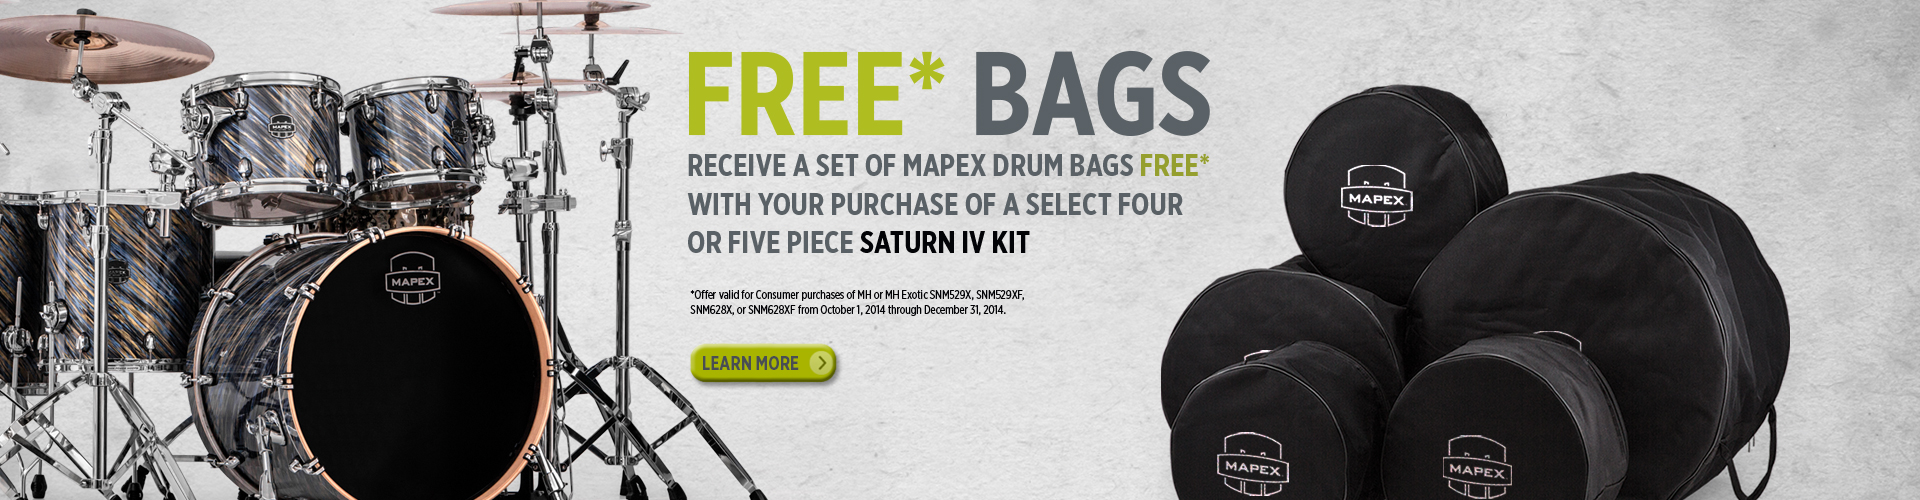 Saturn IV Free Bags Promotion